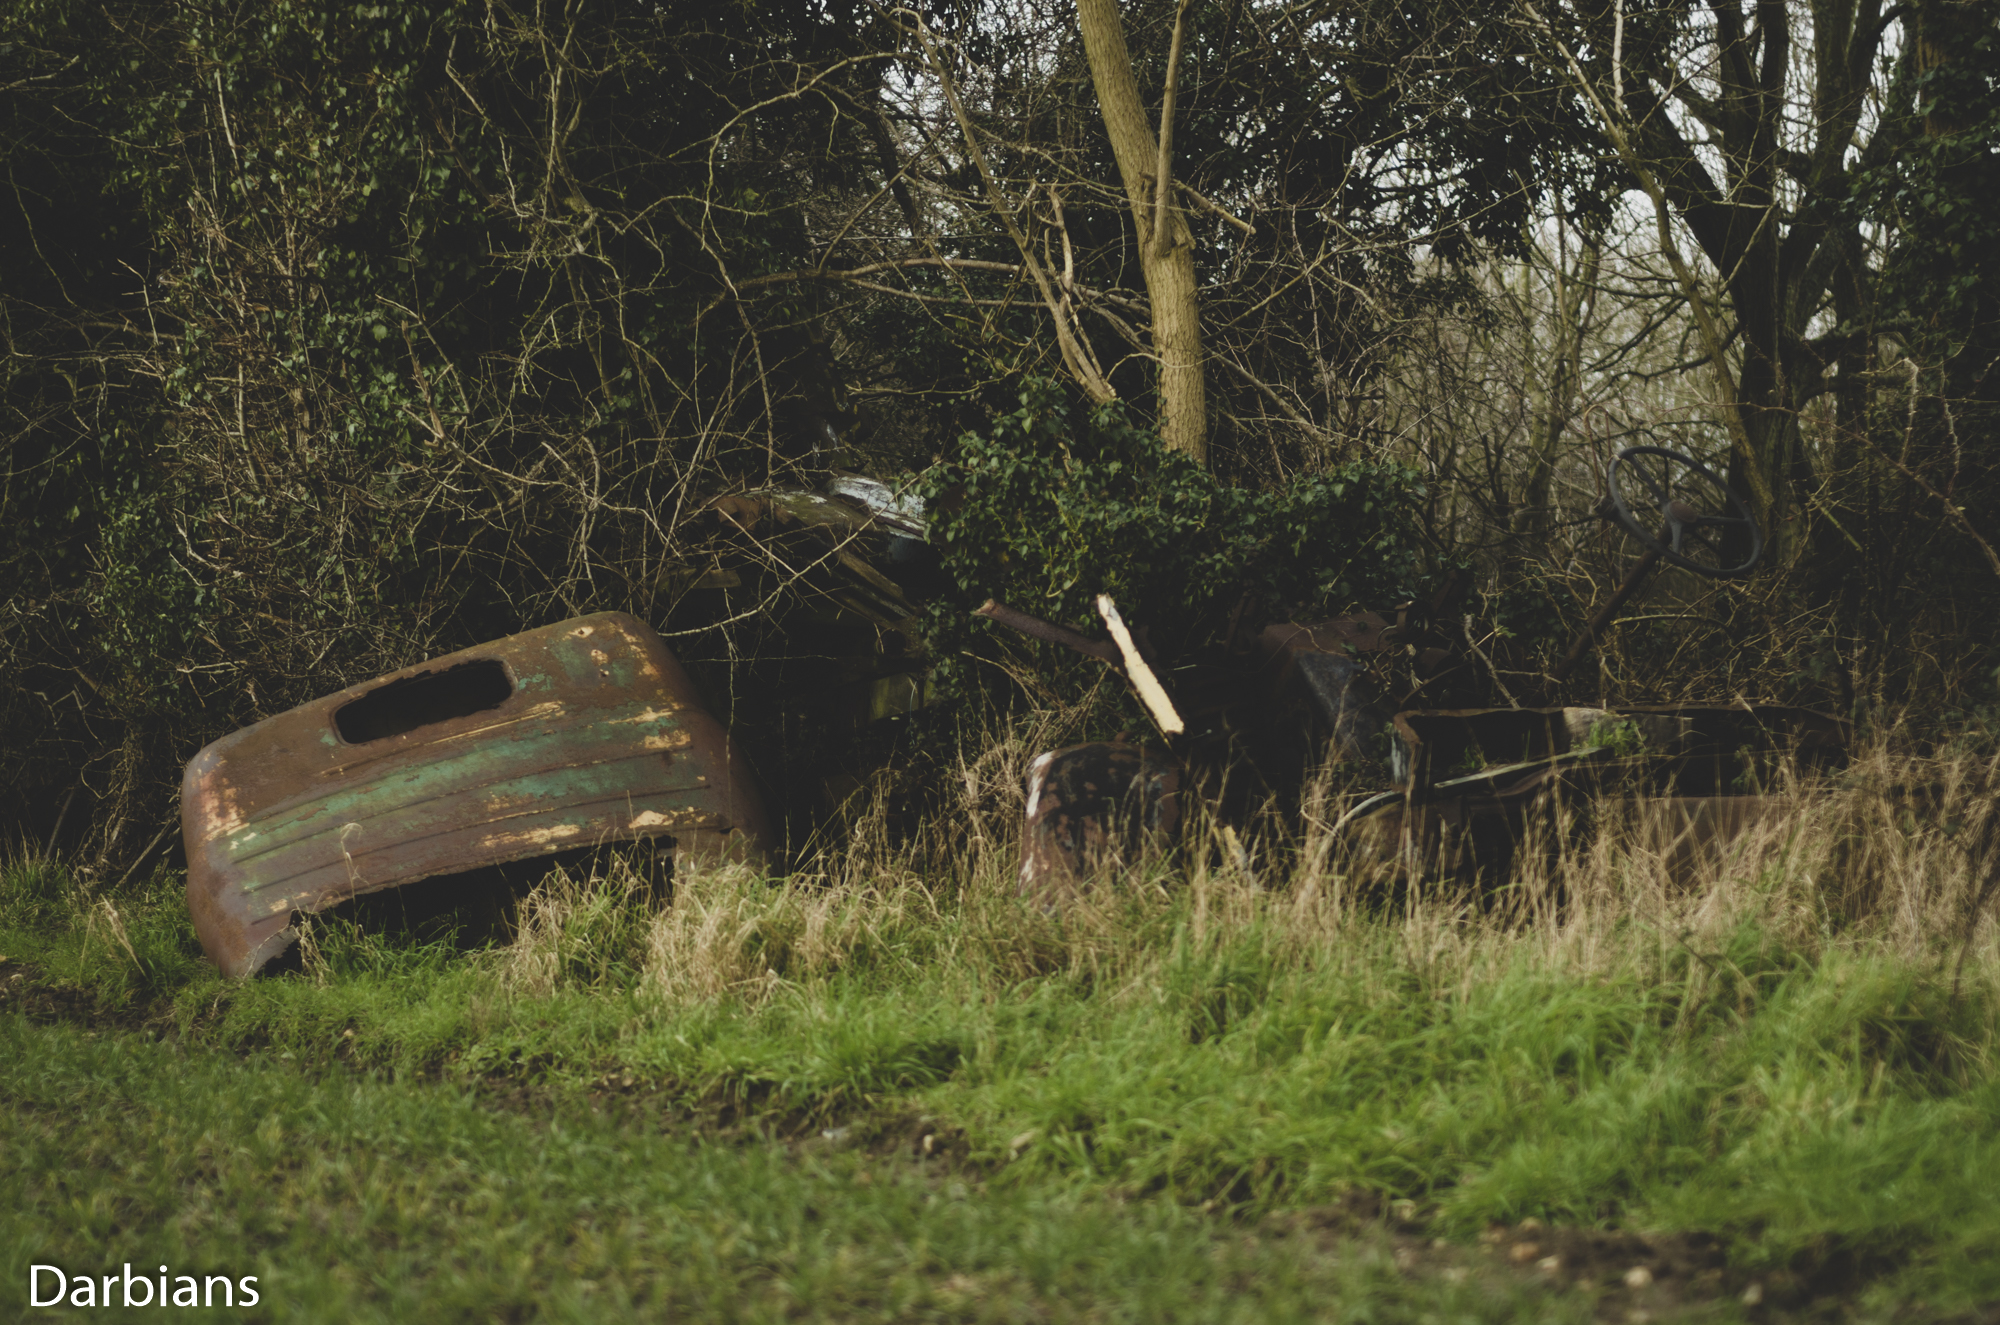 Duelly Graveyard: The cab that caught my eye from the road.